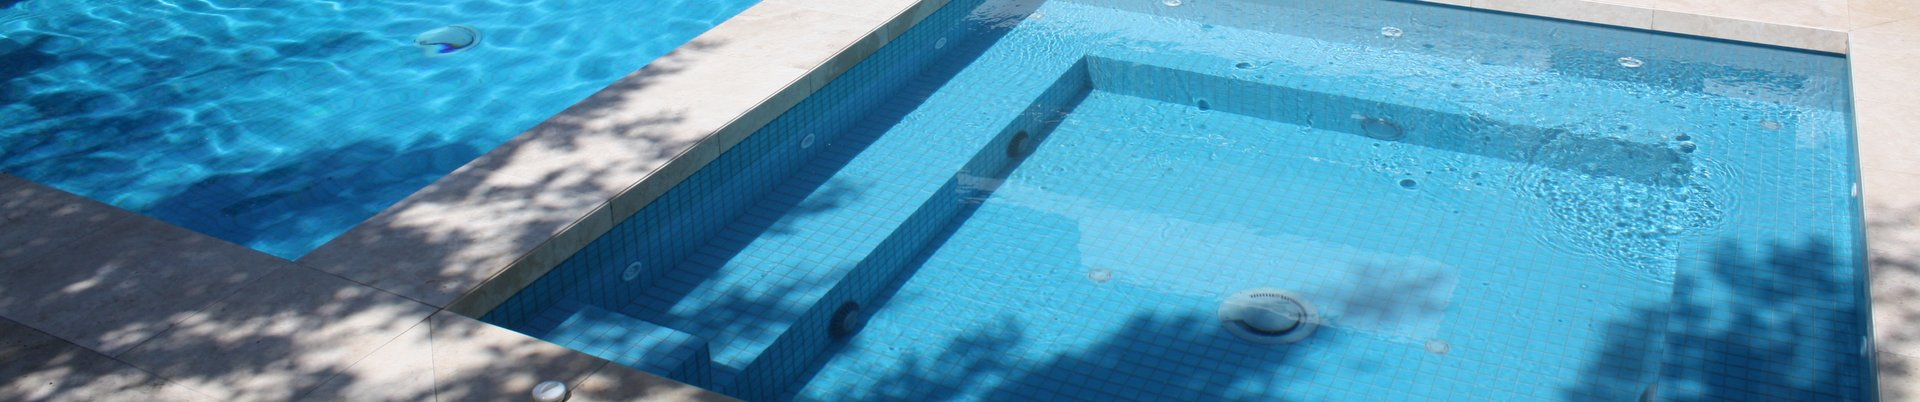 Swimming Pool/Spa Renovations Sydney: Swimming Pool Repair/Maintenance Hills Districts/Lower Blue Mountains/Lower & Upper North Shore/Northern Suburbs & Beaches/Western Sydney